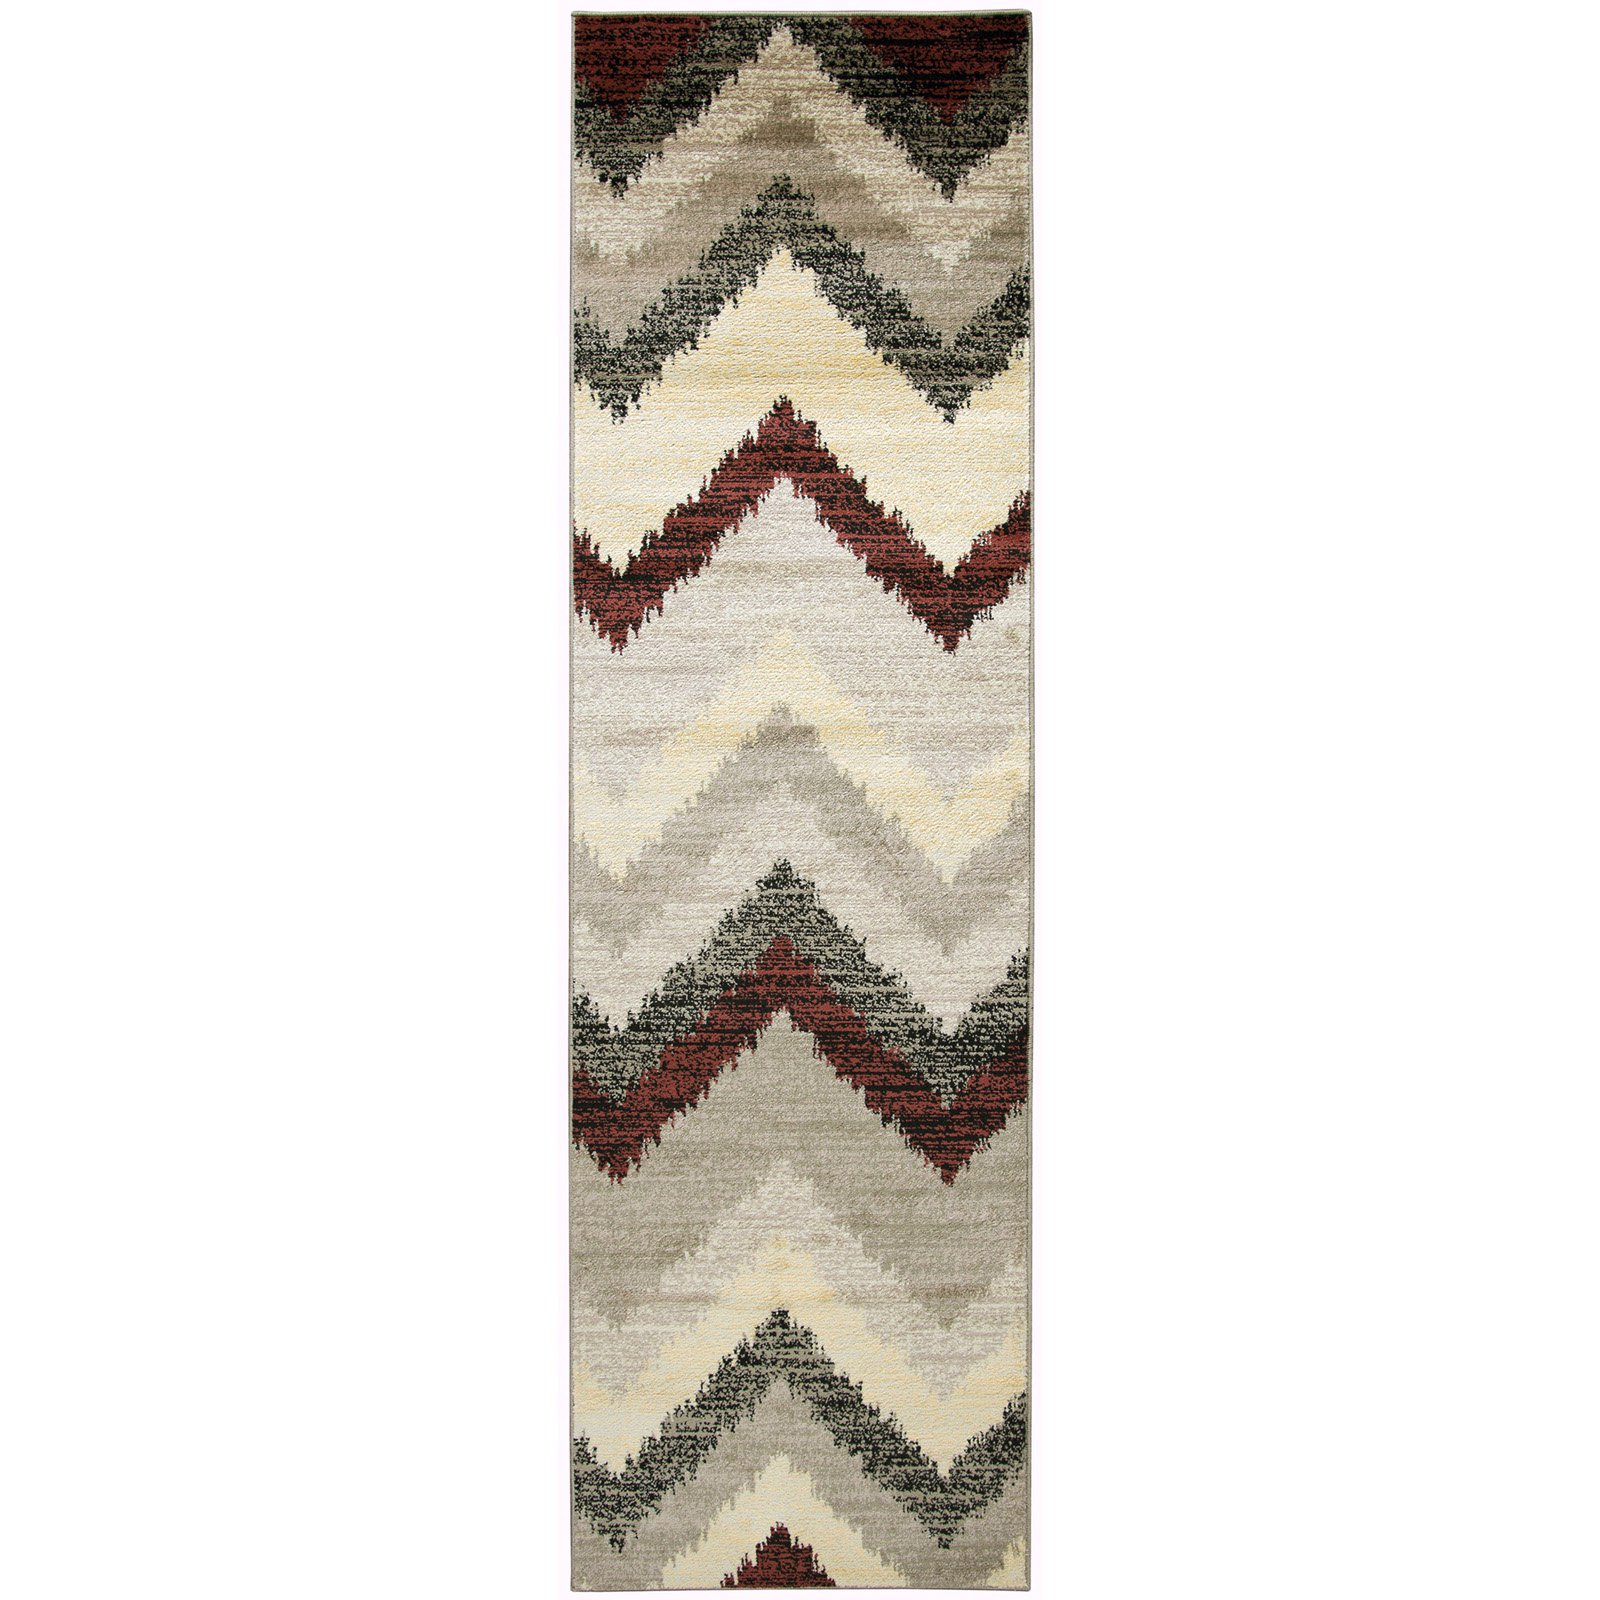 Rizzy Home Bayside BS3593 Rug - (6 Foot 7 Inch x 9 Foot 6 Inch)